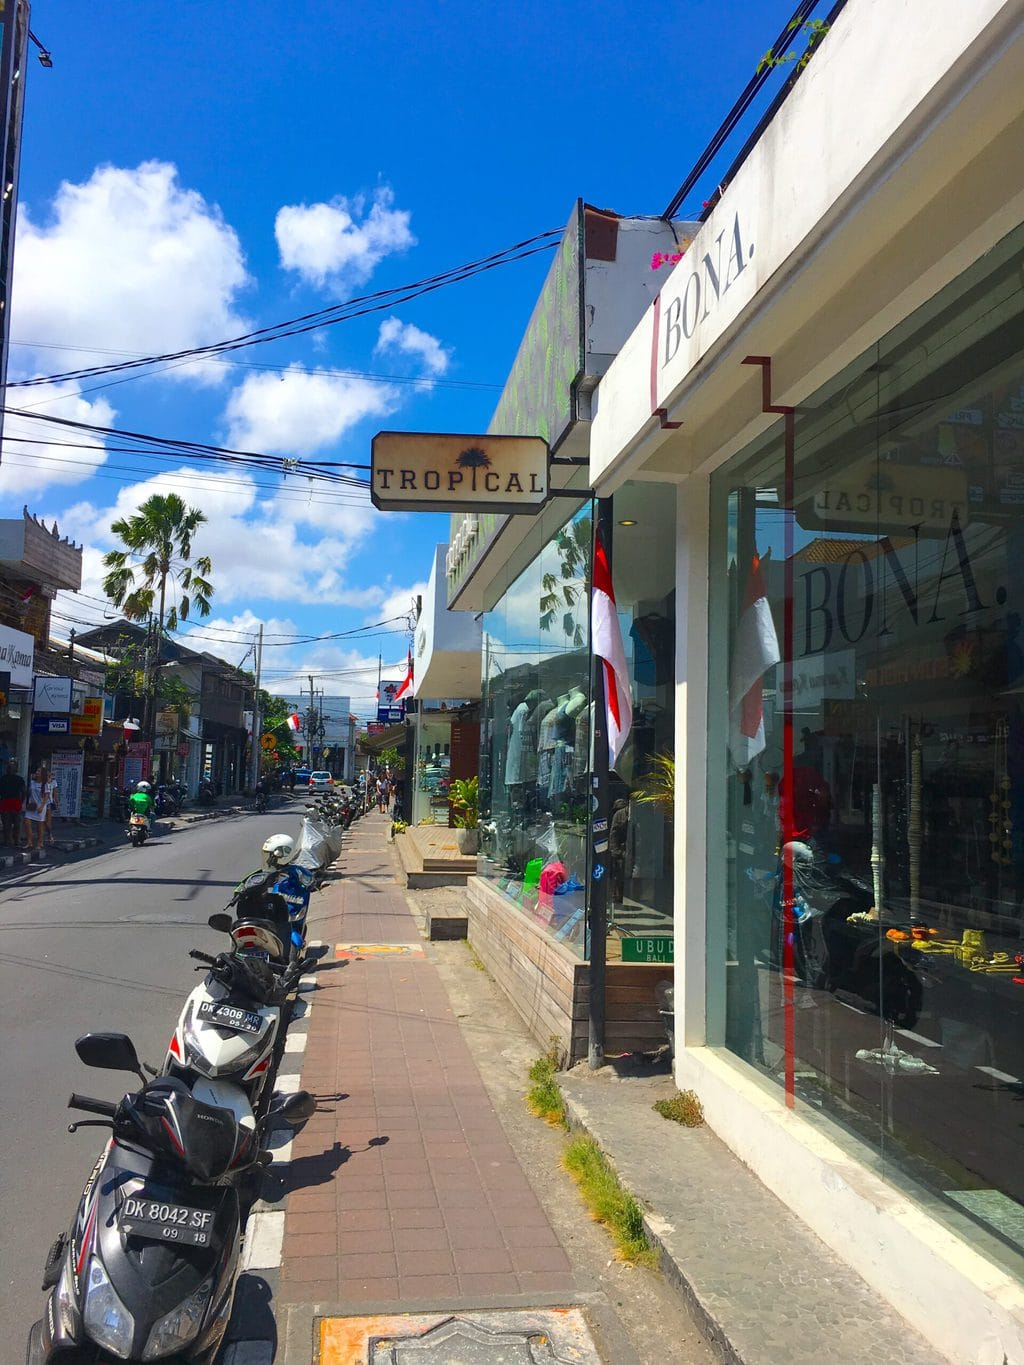 Endless rows of stores in Seminyak